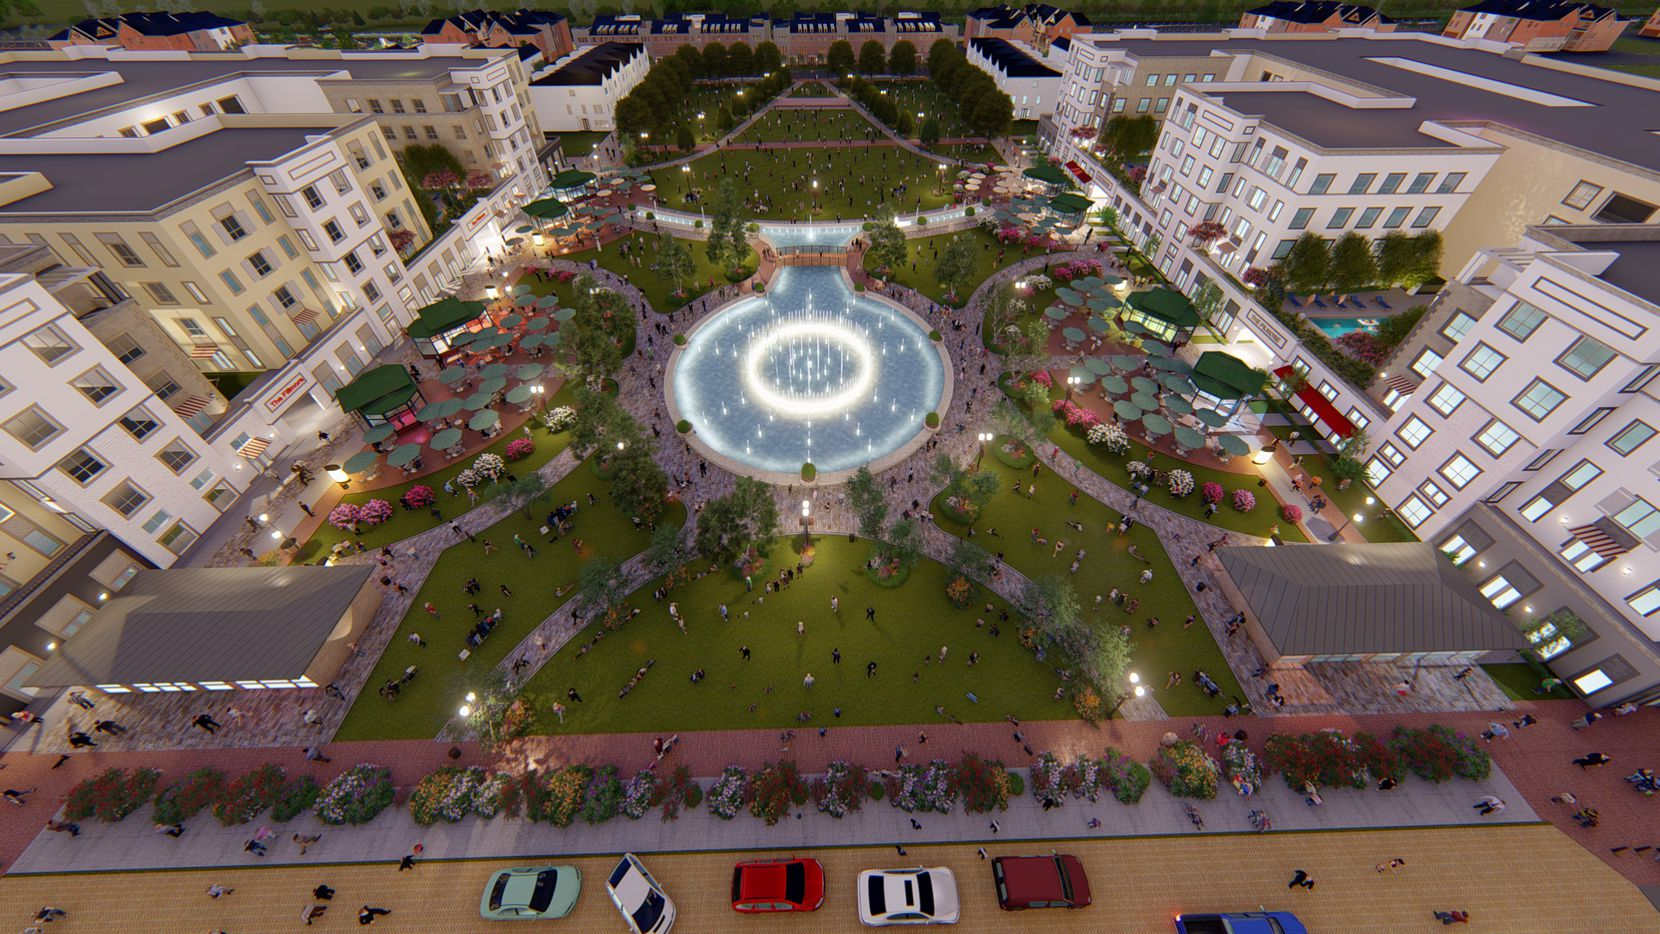 Centurion Development plans to redevelop the Collin Creek Mall site, which covers more than 100 acres, into a $1 billion mixed-use project, including a Crystal Lagoon water feature.